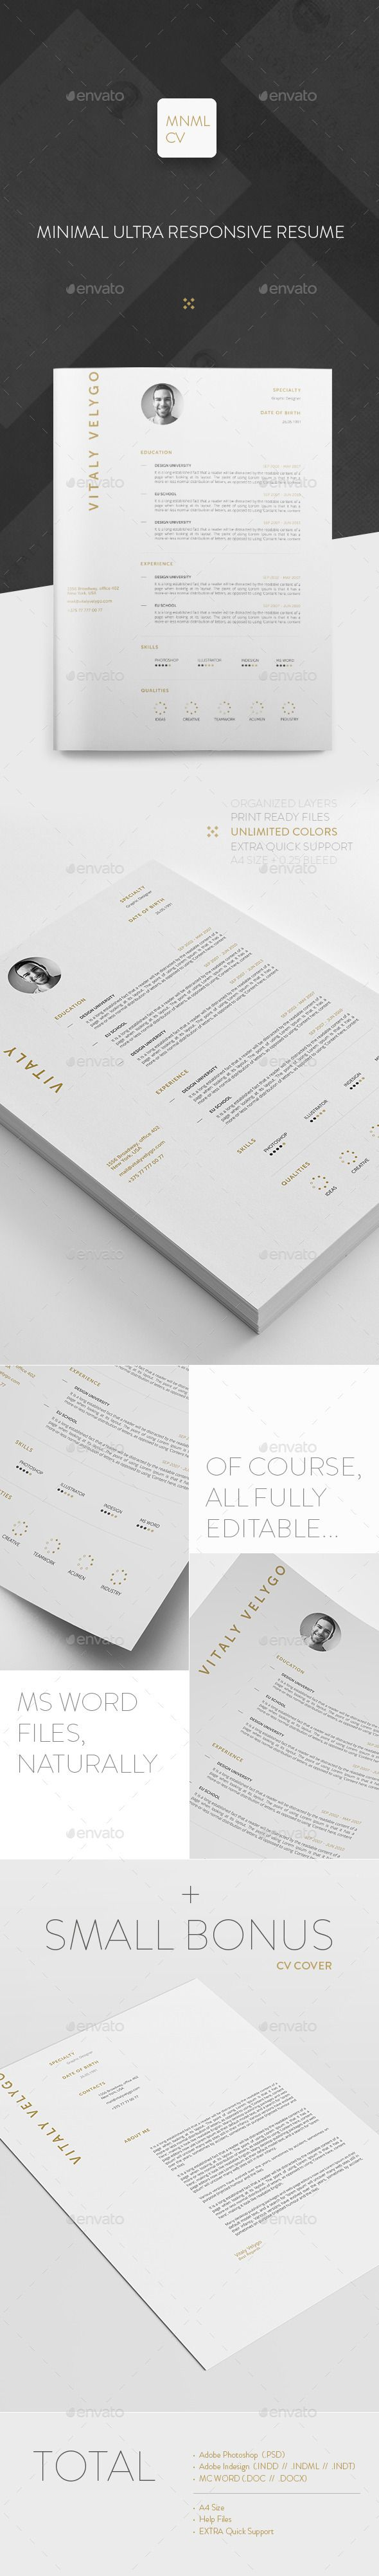 MNML CV / Minimal Clean Resume — Photoshop PSD #cv #swiss • Available here → https://graphicriver.net/item/mnml-cv-minimal-clean-resume/11426217?ref=pxcr